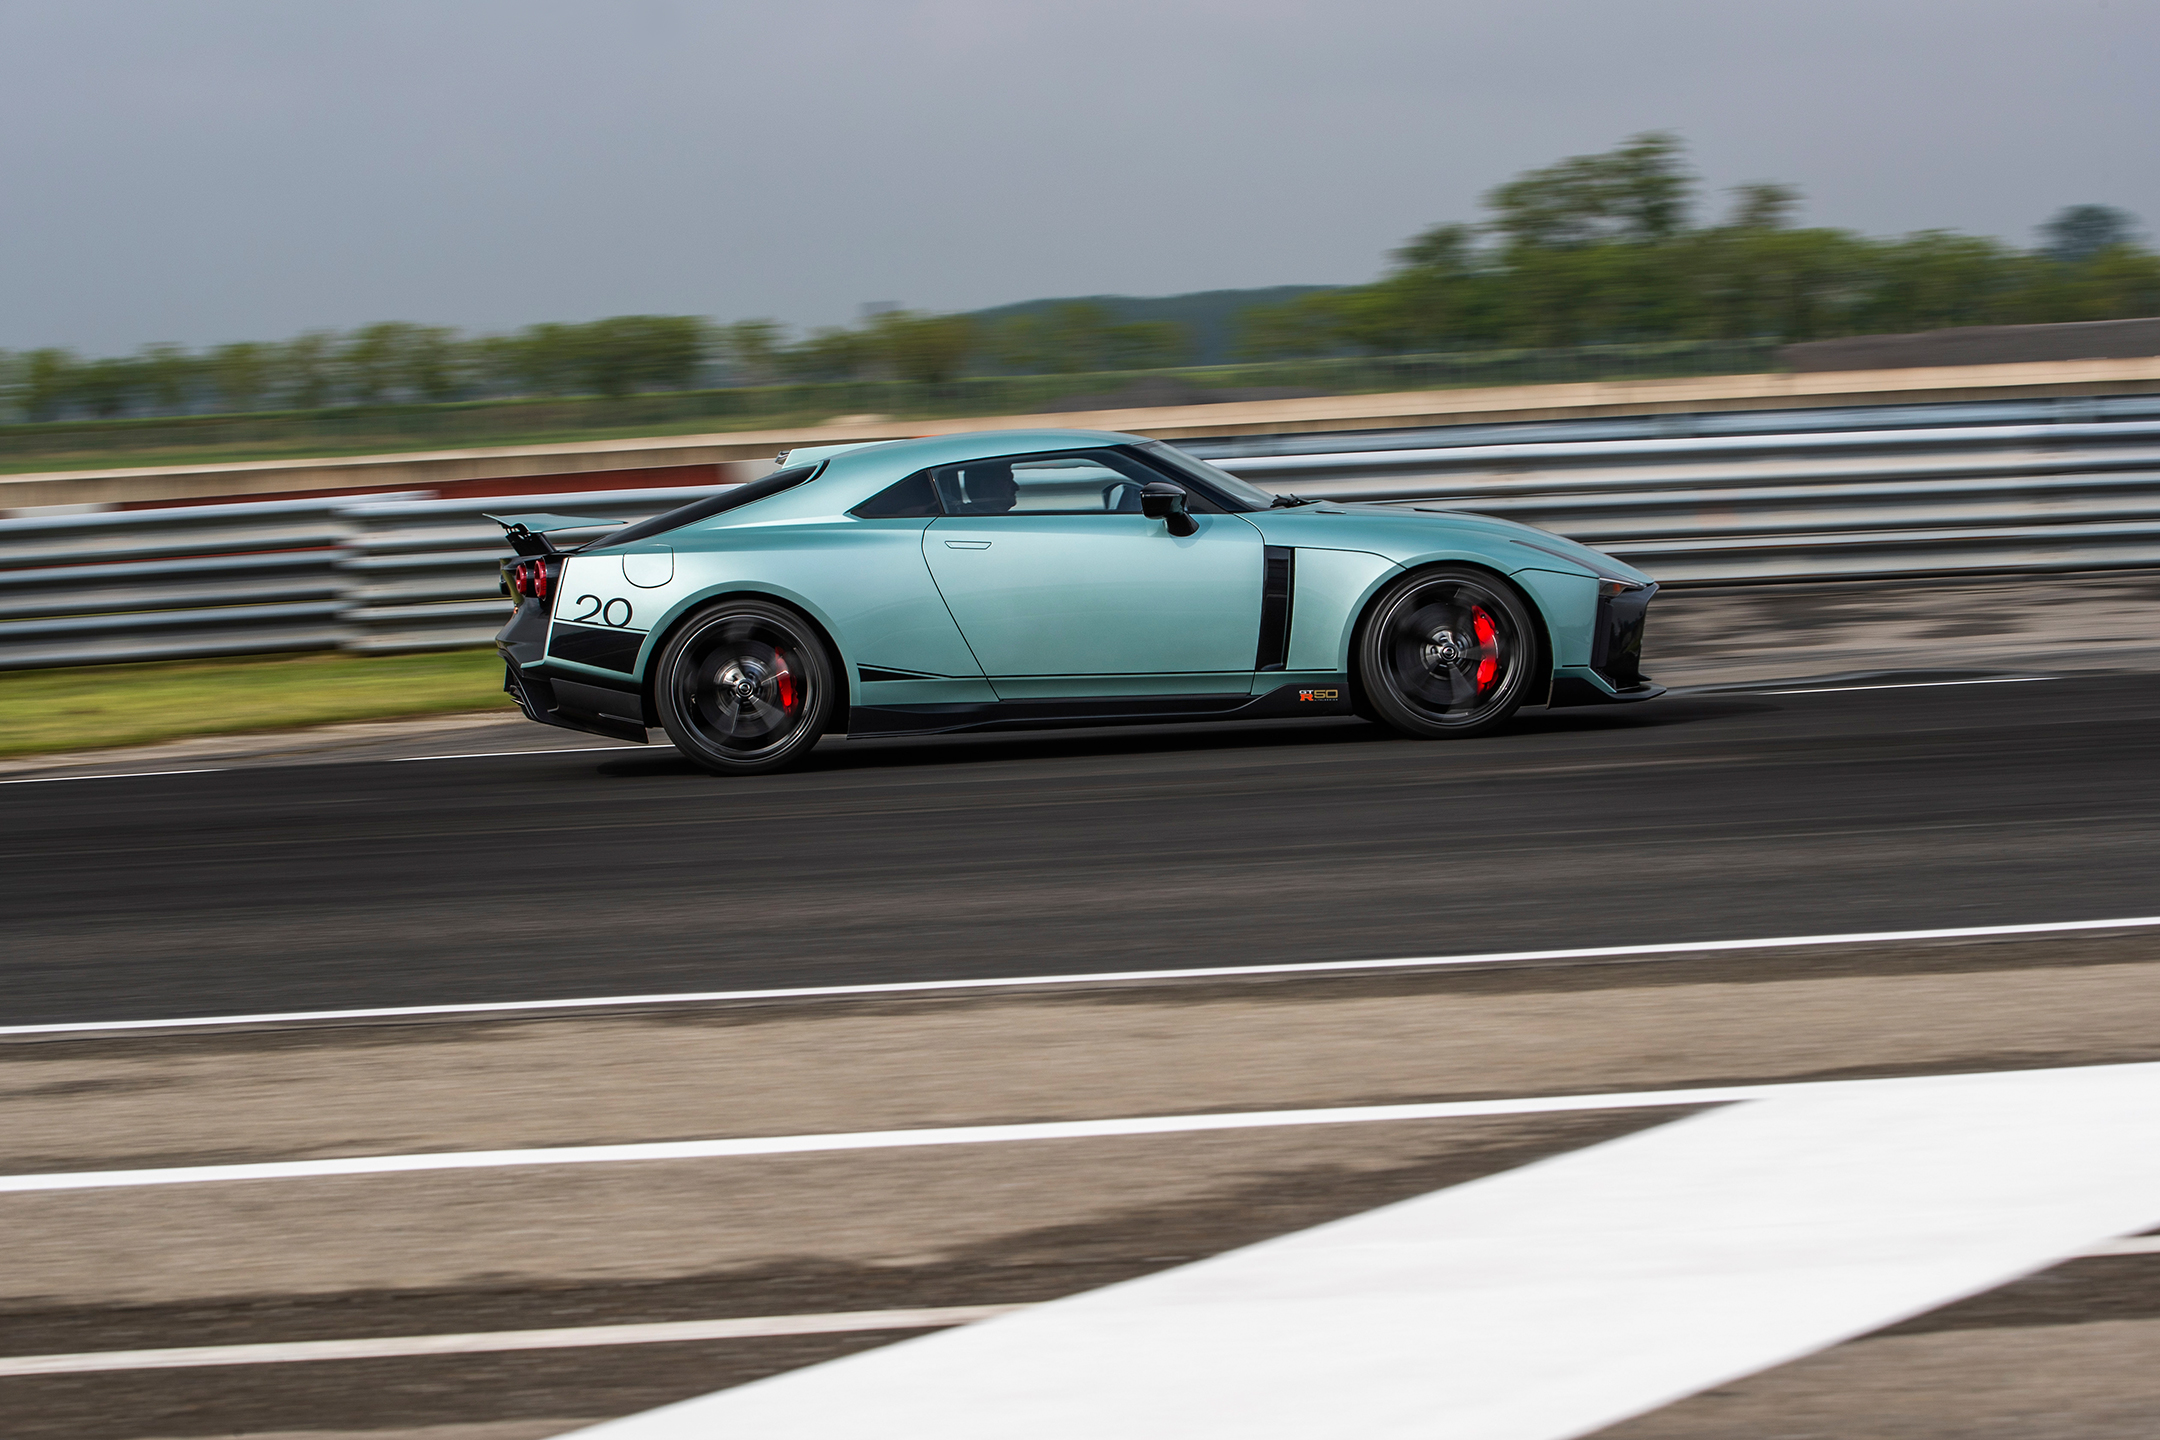 Nissan GT-R50 by Italdesign - 2020 - side-face / profil - on track / sur circuit